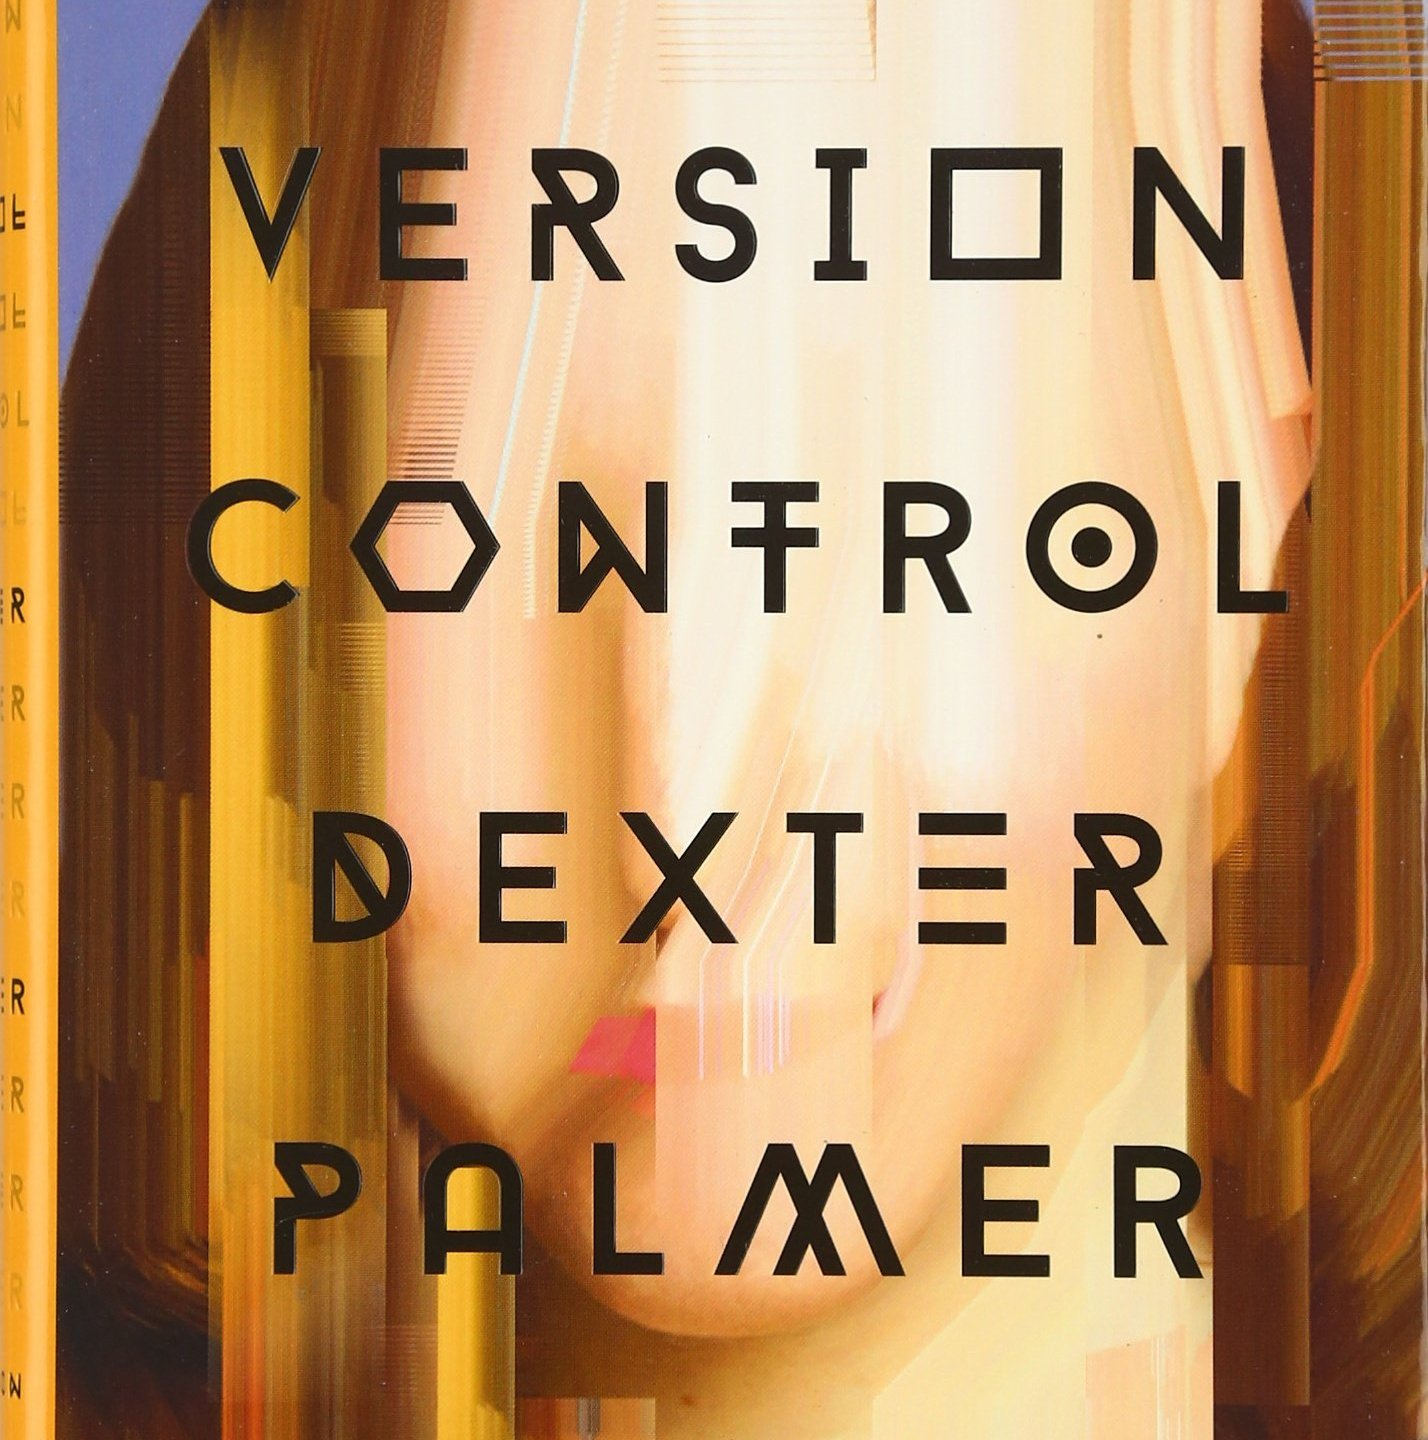 Version Control, by Dexter Palmer